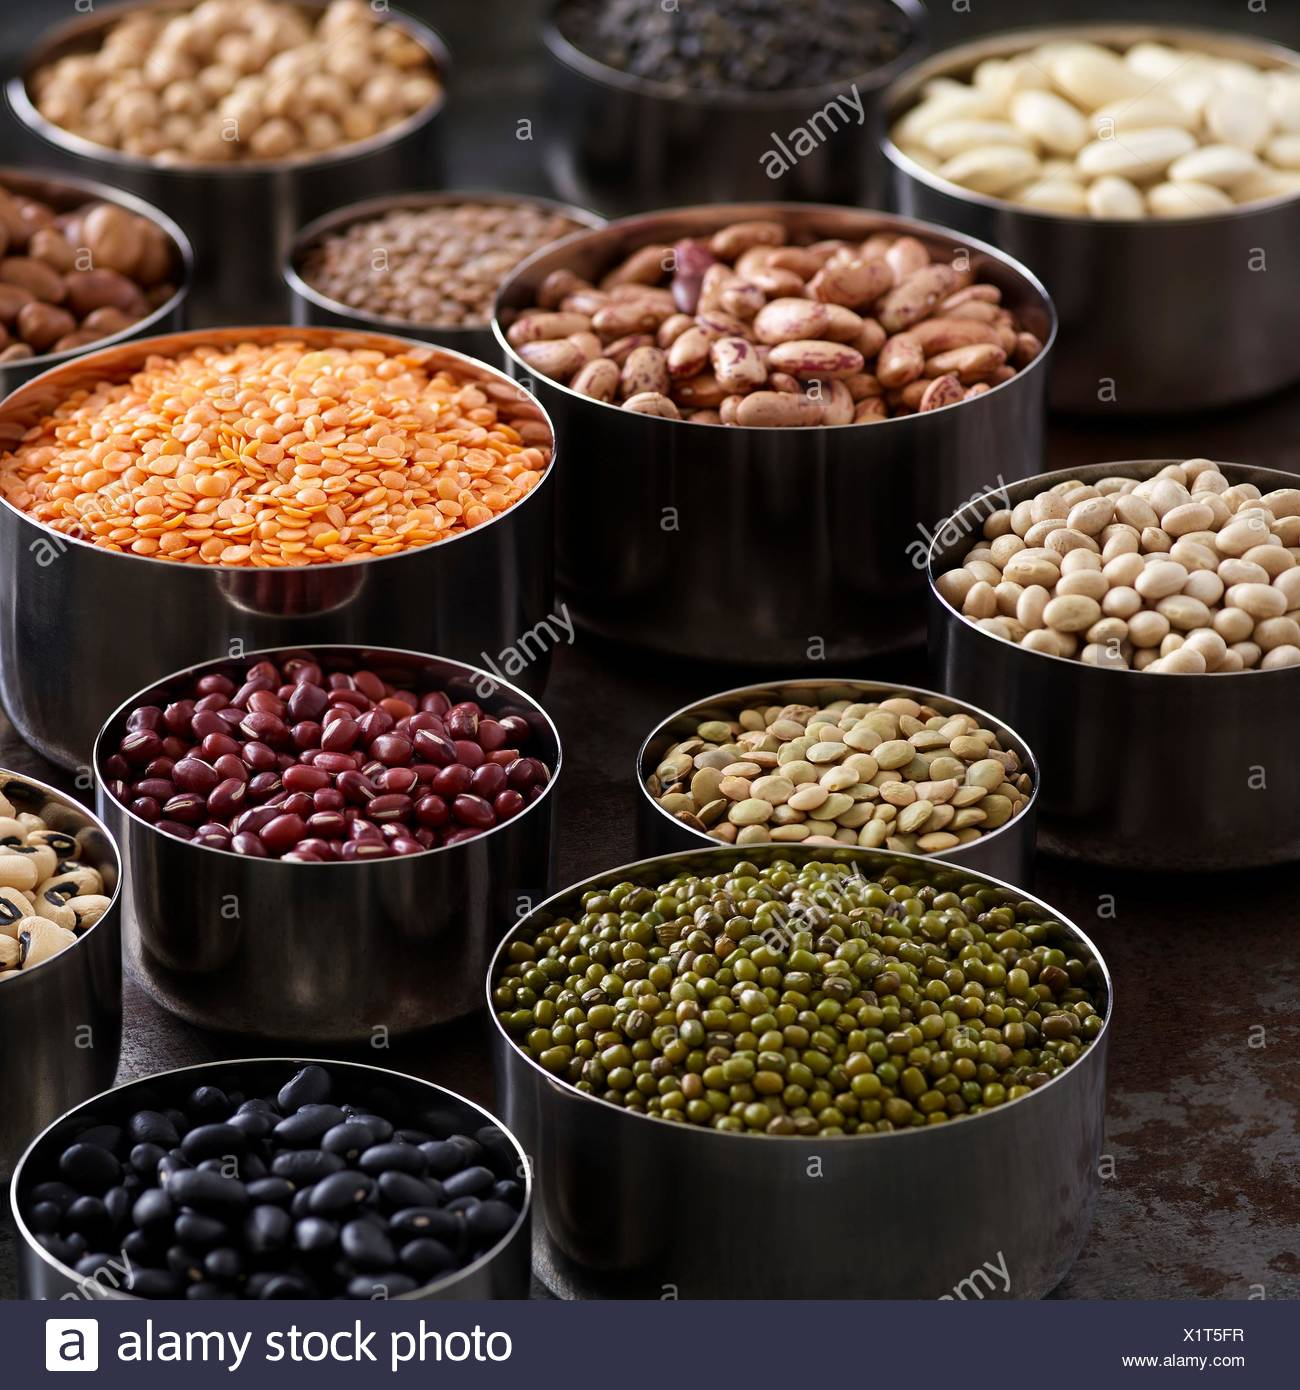 Pulses in metal bowls. - Stock Image